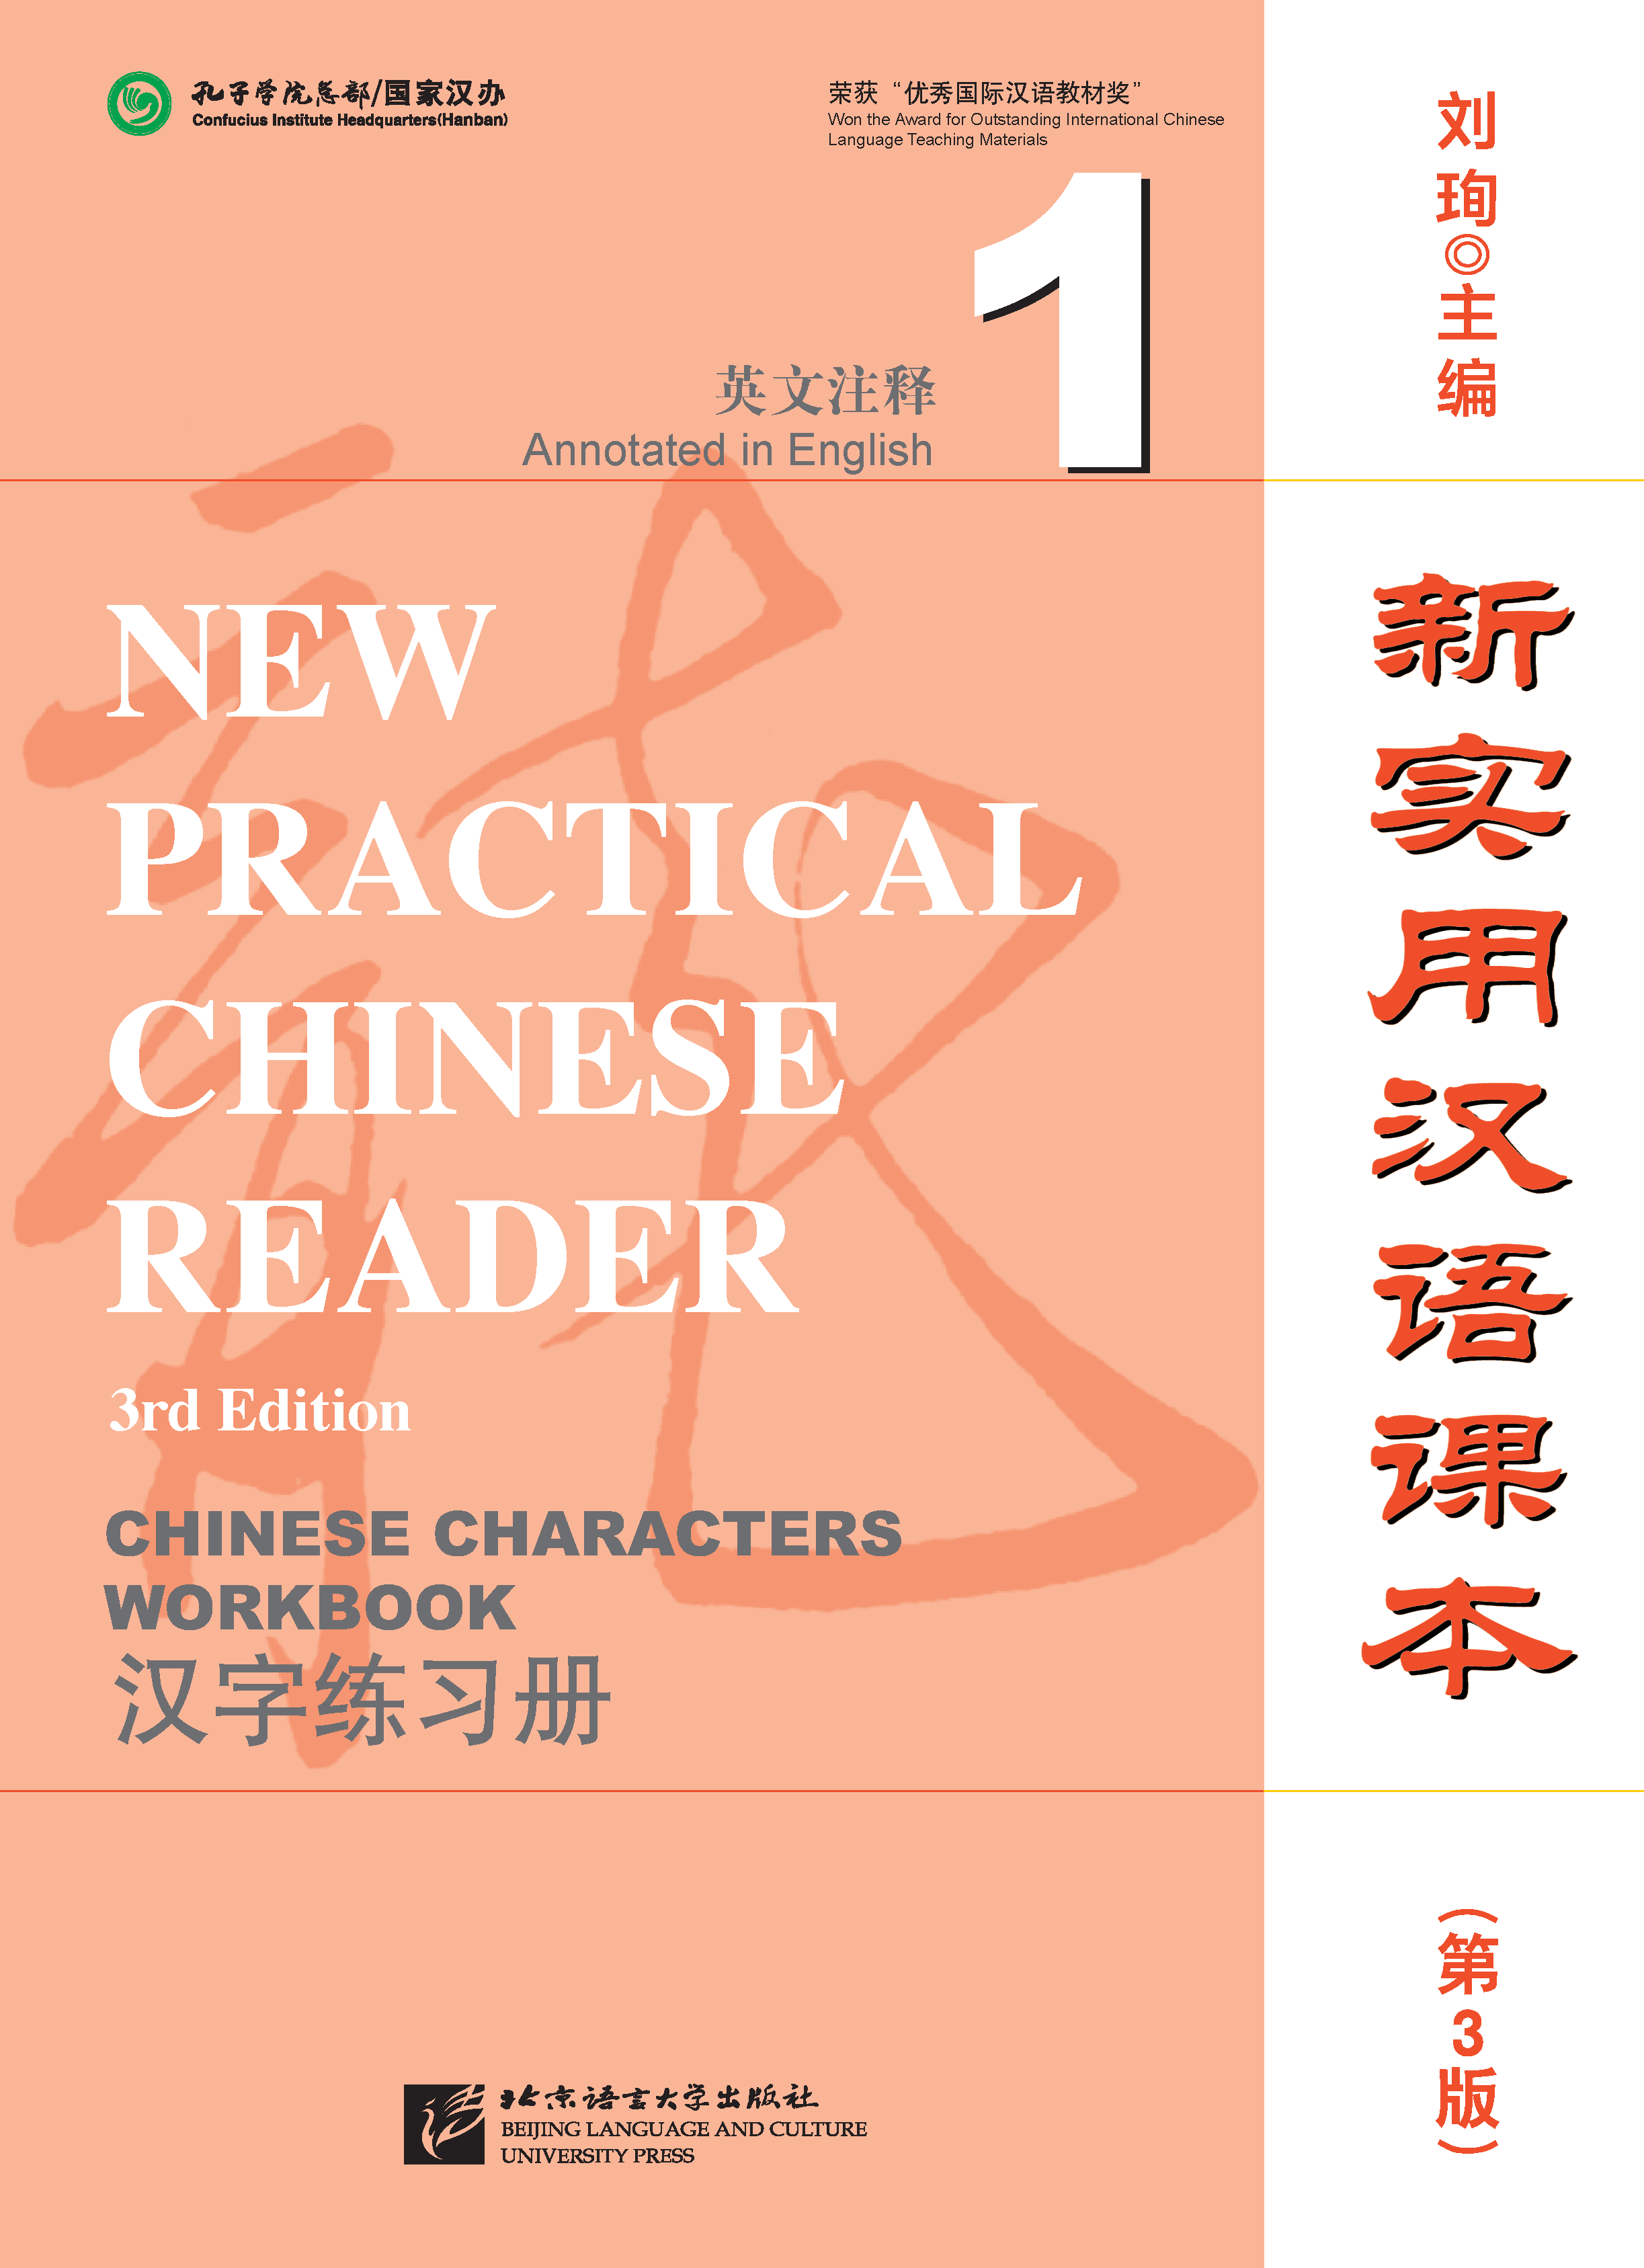 New Practical Chinese Reader 3rd Edition Vol 1